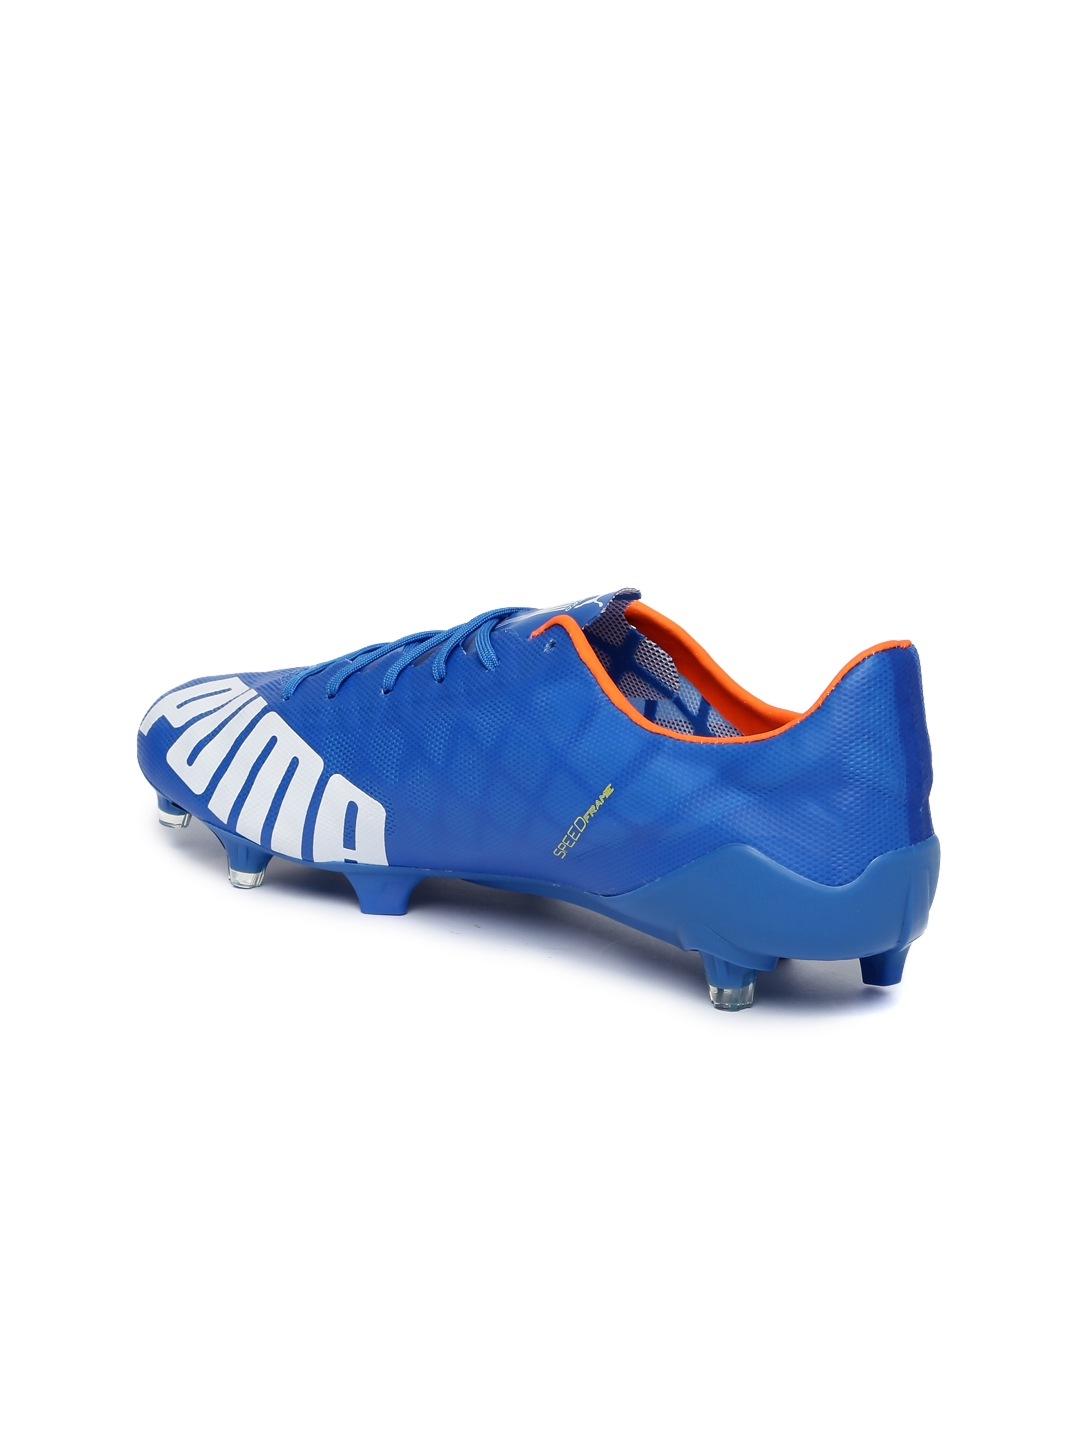 Buy Puma Men Blue EvoSPEED SL Football Shoes - Sports Shoes for Men ... 243e23e95c